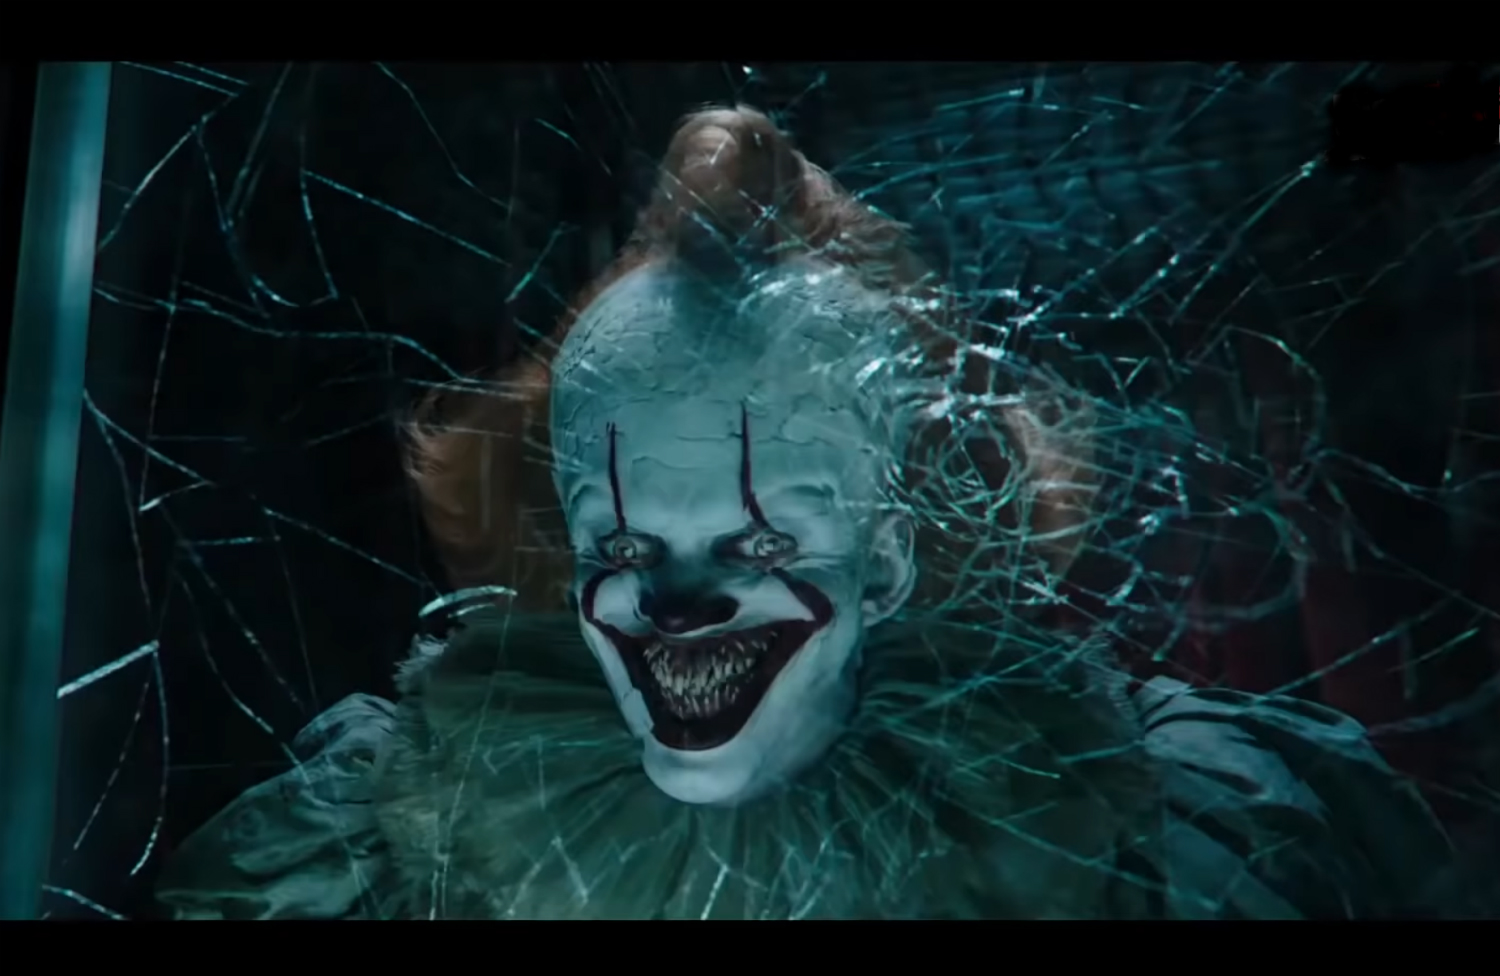 pennywise_ca_capture_warner_5d94a3dd27376.jpg